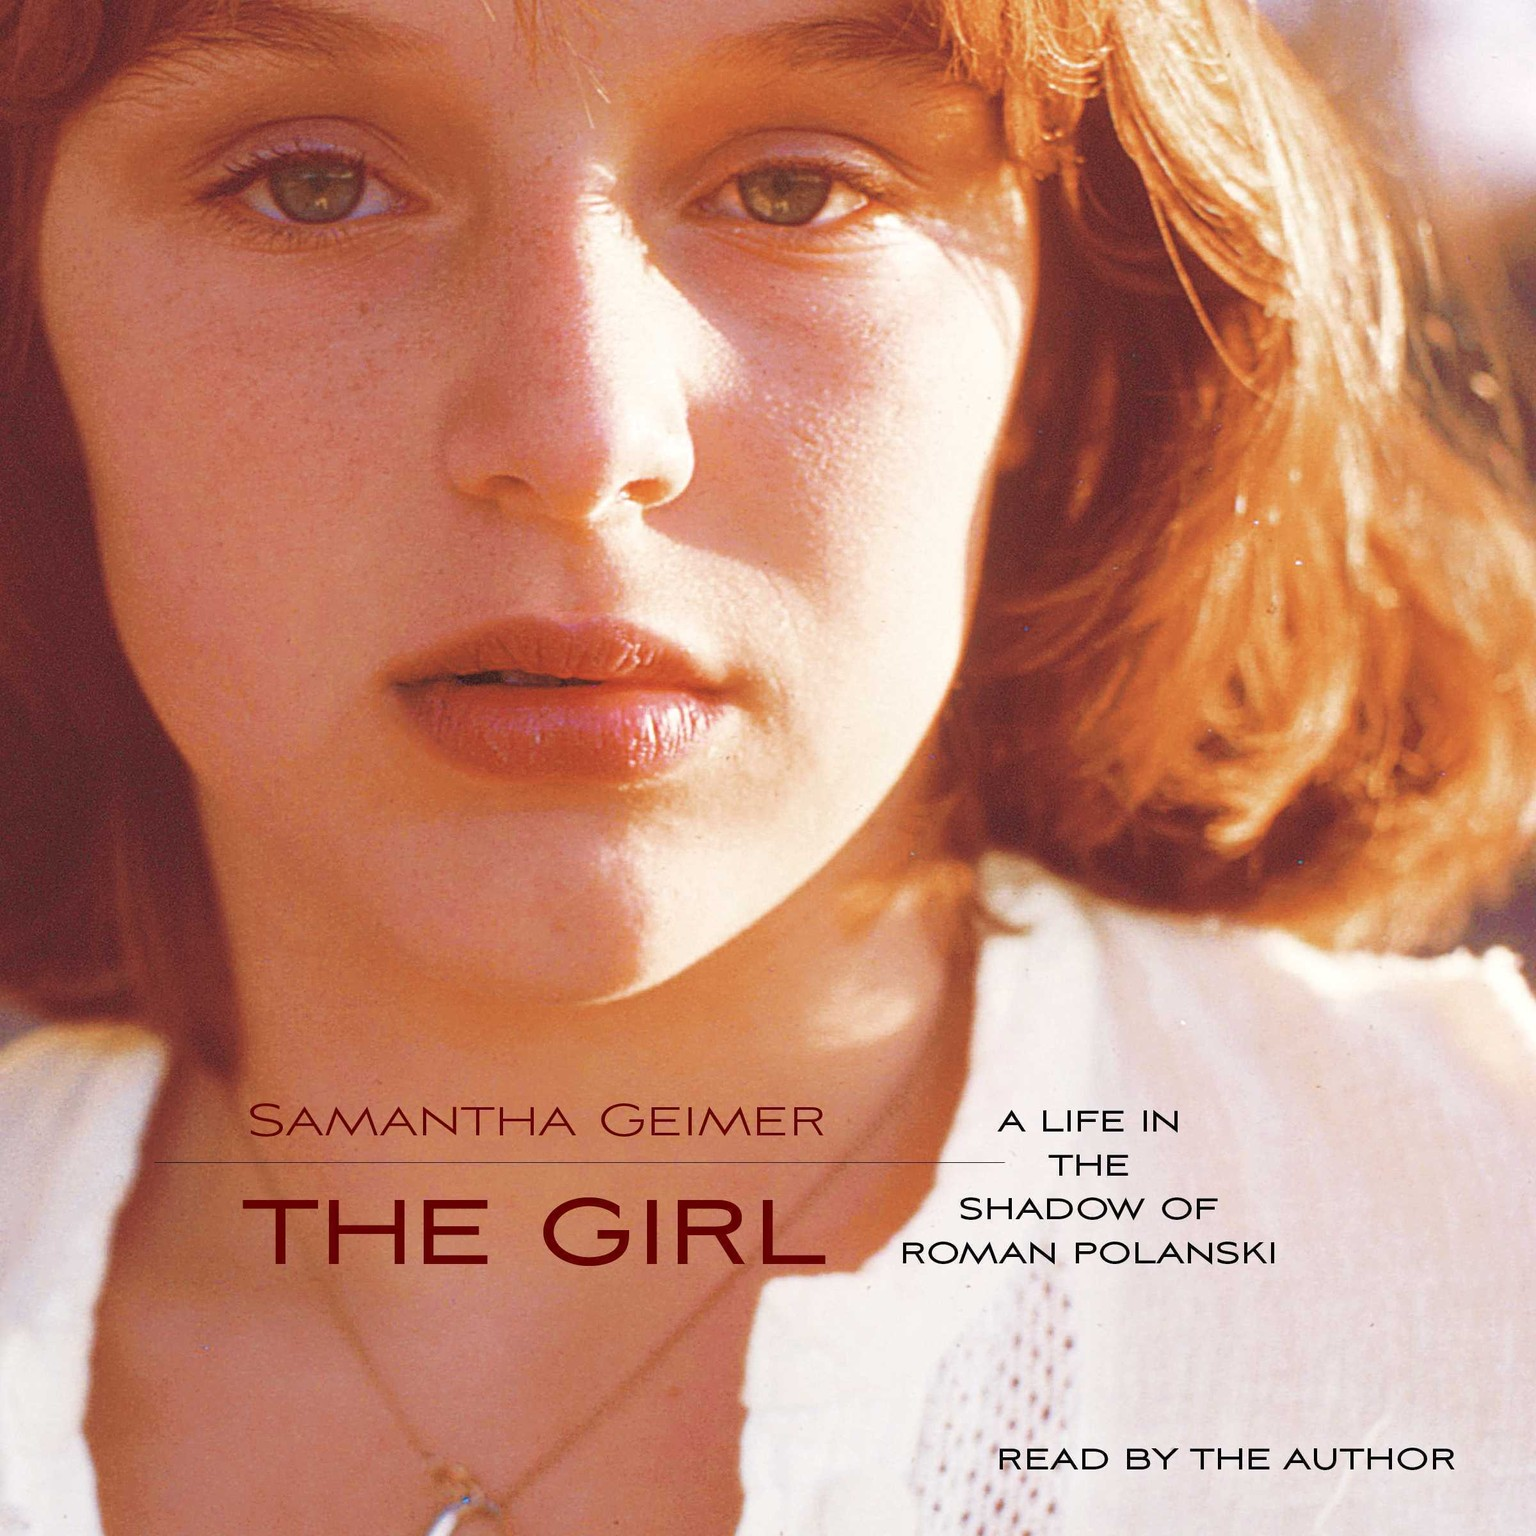 Printable The Girl: A Life Lived in the Shadow of Roman Polanski Audiobook Cover Art